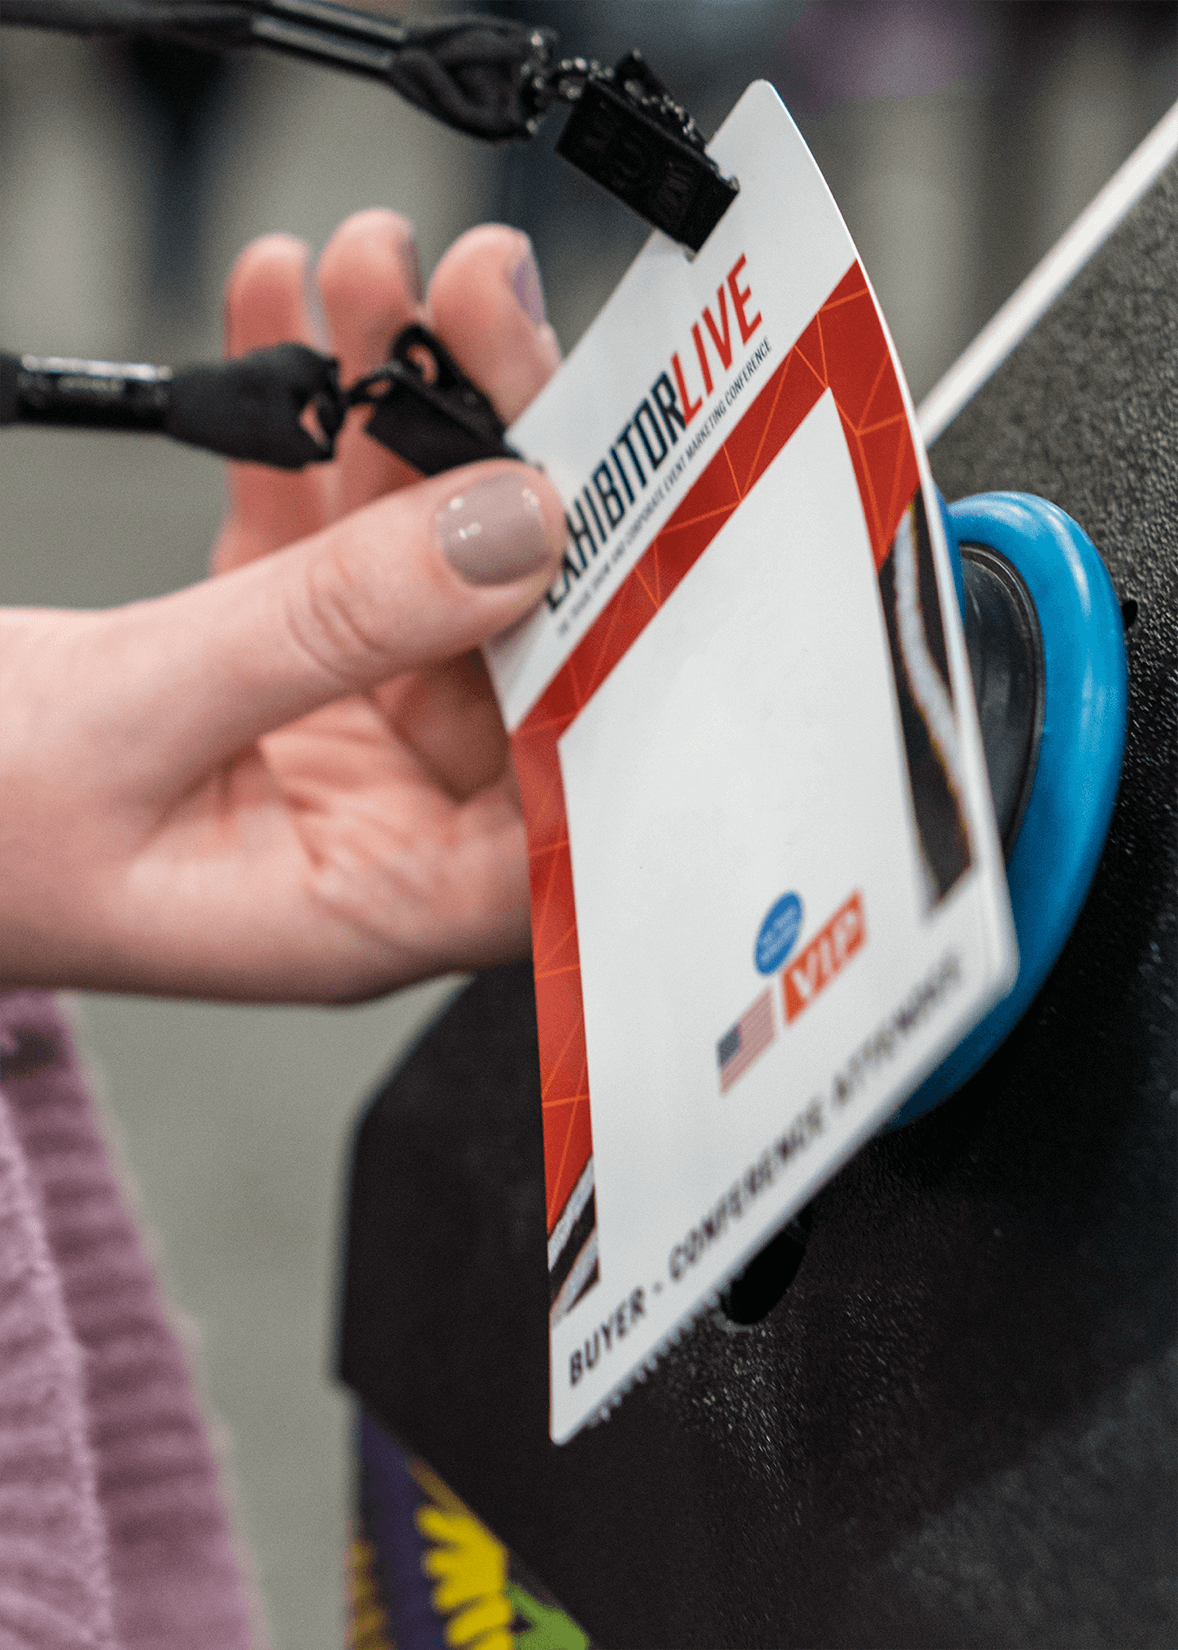 Attendee Badge being scanned at tap n' go pod at an event